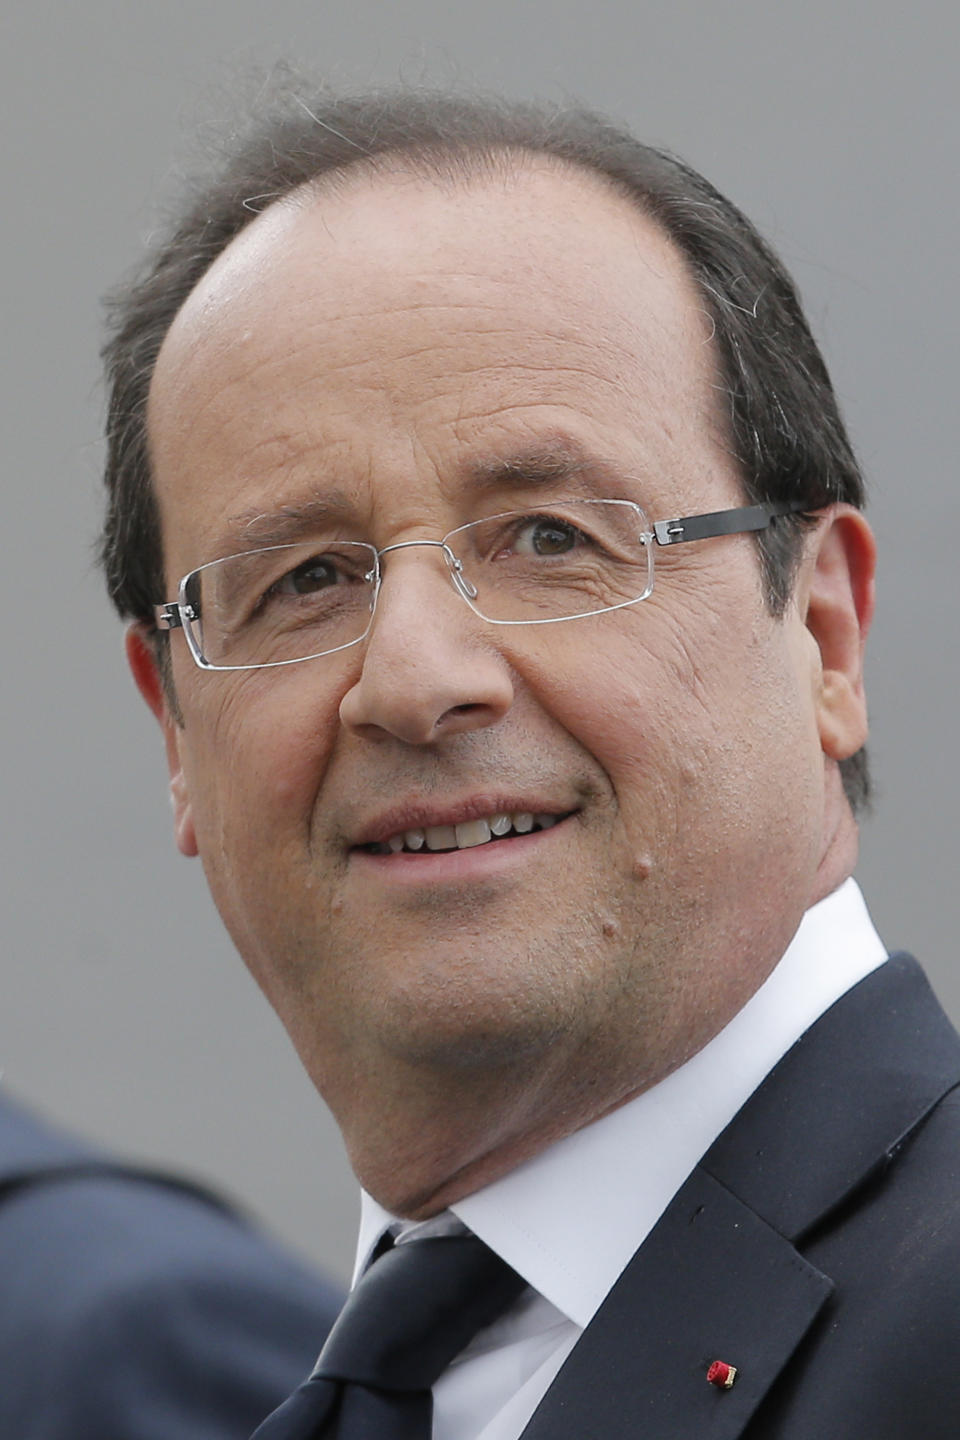 French president Francois Hollande watches the end of the 18th stage of the Tour de France cycling race over 222.5 kilometers (138.3 miles) with start in Blagnac and finish in Brive-la-Gaillarde, France, Friday July 20, 2012. (AP Photo/Christophe Ena)